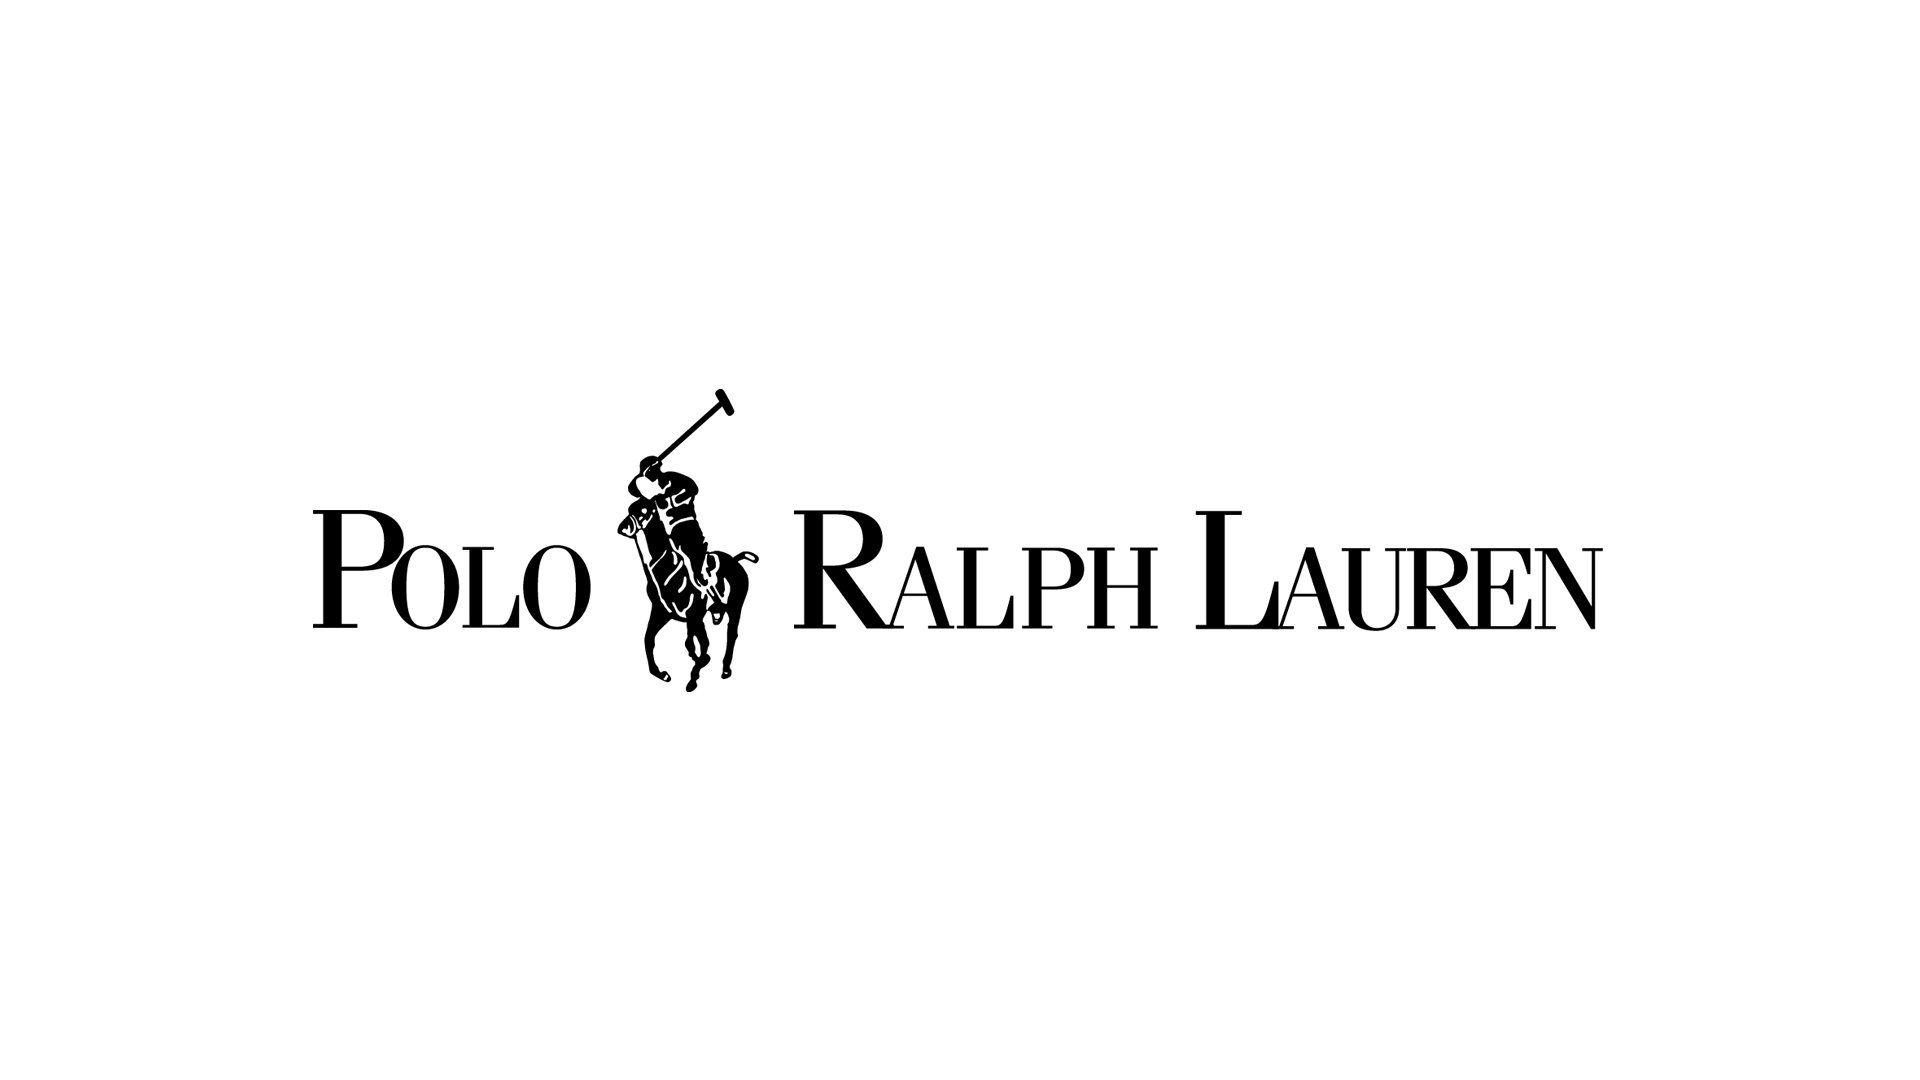 Polo Logo Wallpaper - WallpaperSafari